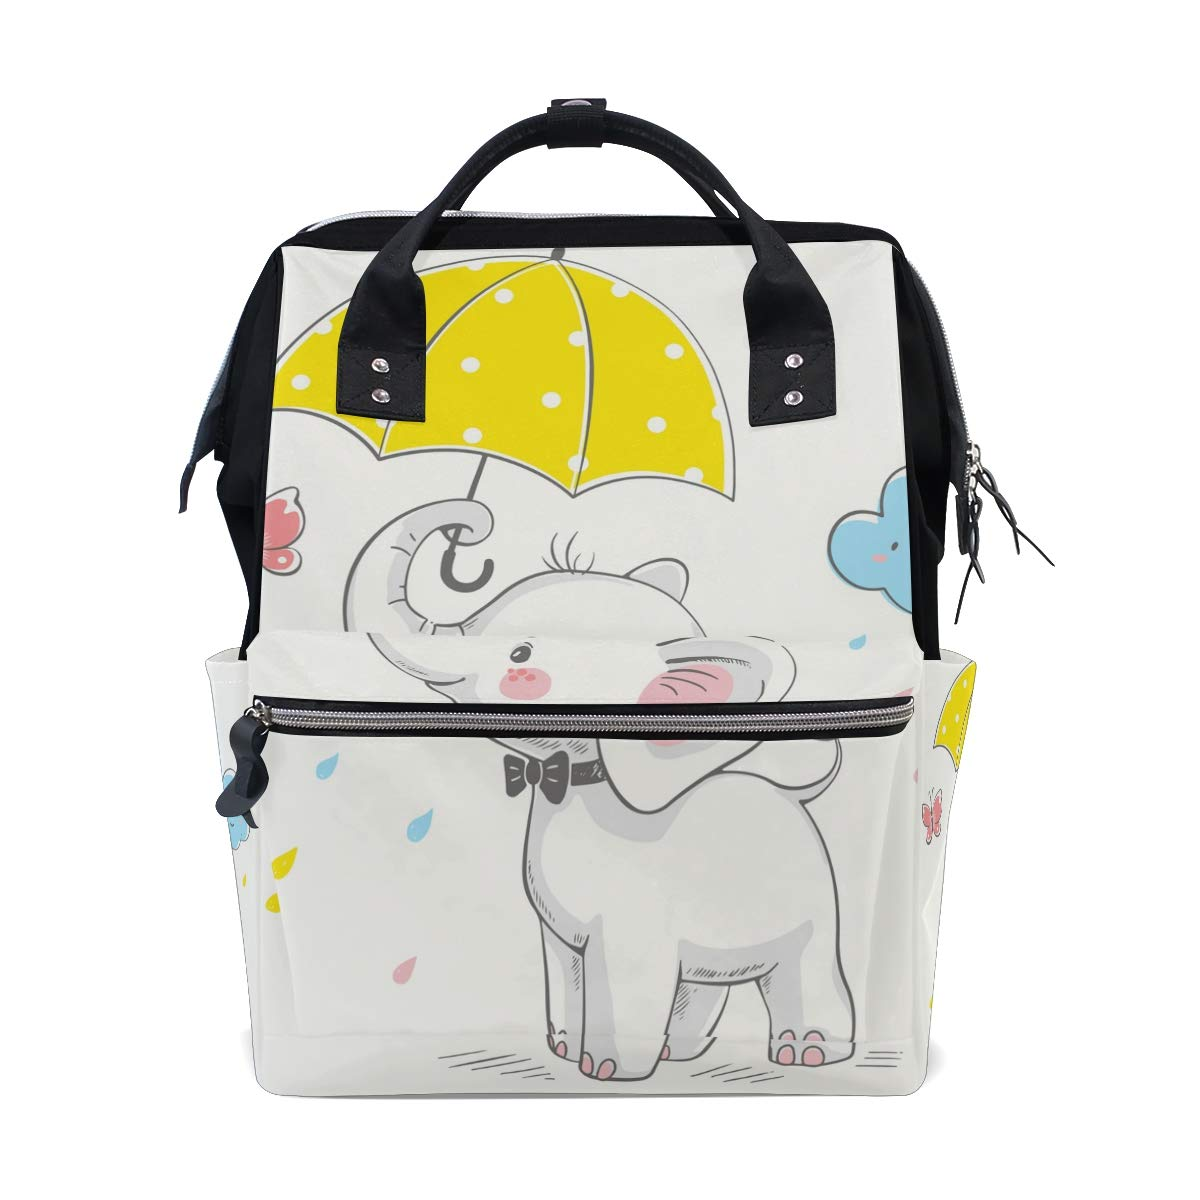 TropicalLife Cute Animal Elephant Diaper Backpack Large Capacity Baby Bags Multi-Function Zipper Casual Travel Backpacks for Mom Dad Unisex by TropicalLife